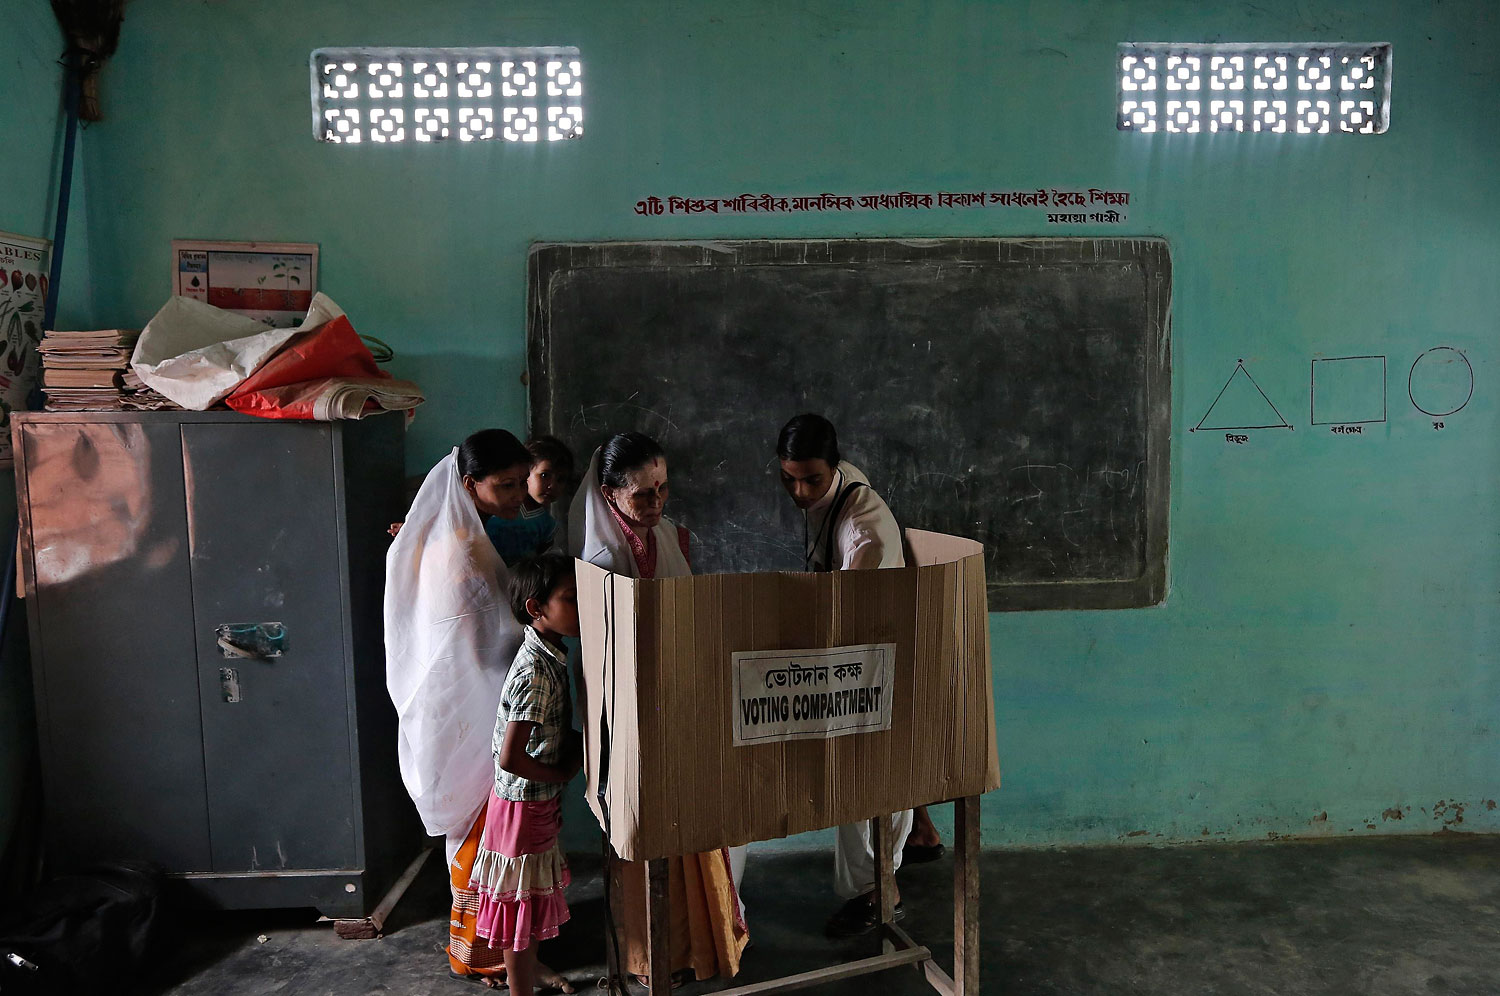 A polling officer helps a woman to cast her vote at a polling station in Majuli, a large river island in the Brahmaputra river, Jorhat district, in the northeastern Indian state of Assam, April 7, 2014.